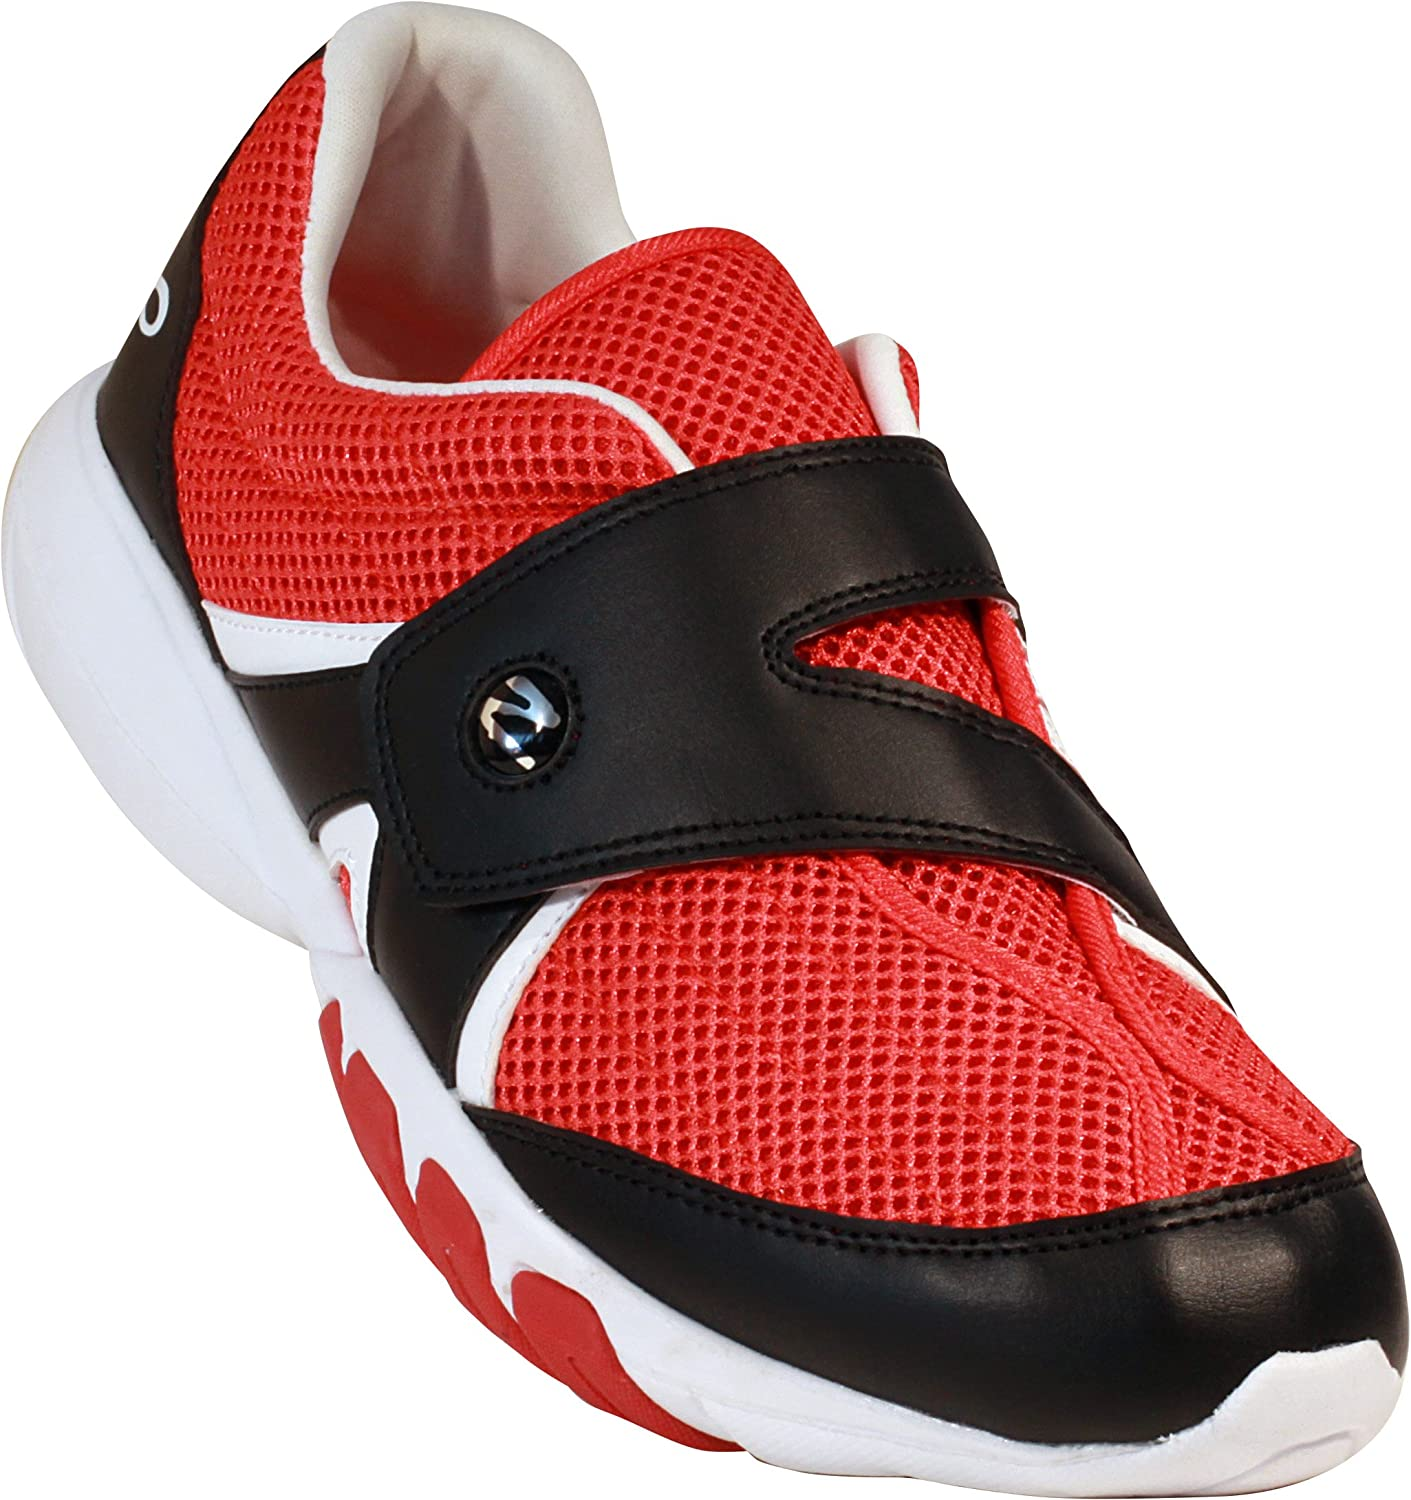 ZEKO Lightweight Fishing, Boating, Outdoor and Athletic Drainable Red Shoe B01N2VCX3B 14 B(M) US Women / 12 D(M) US Men